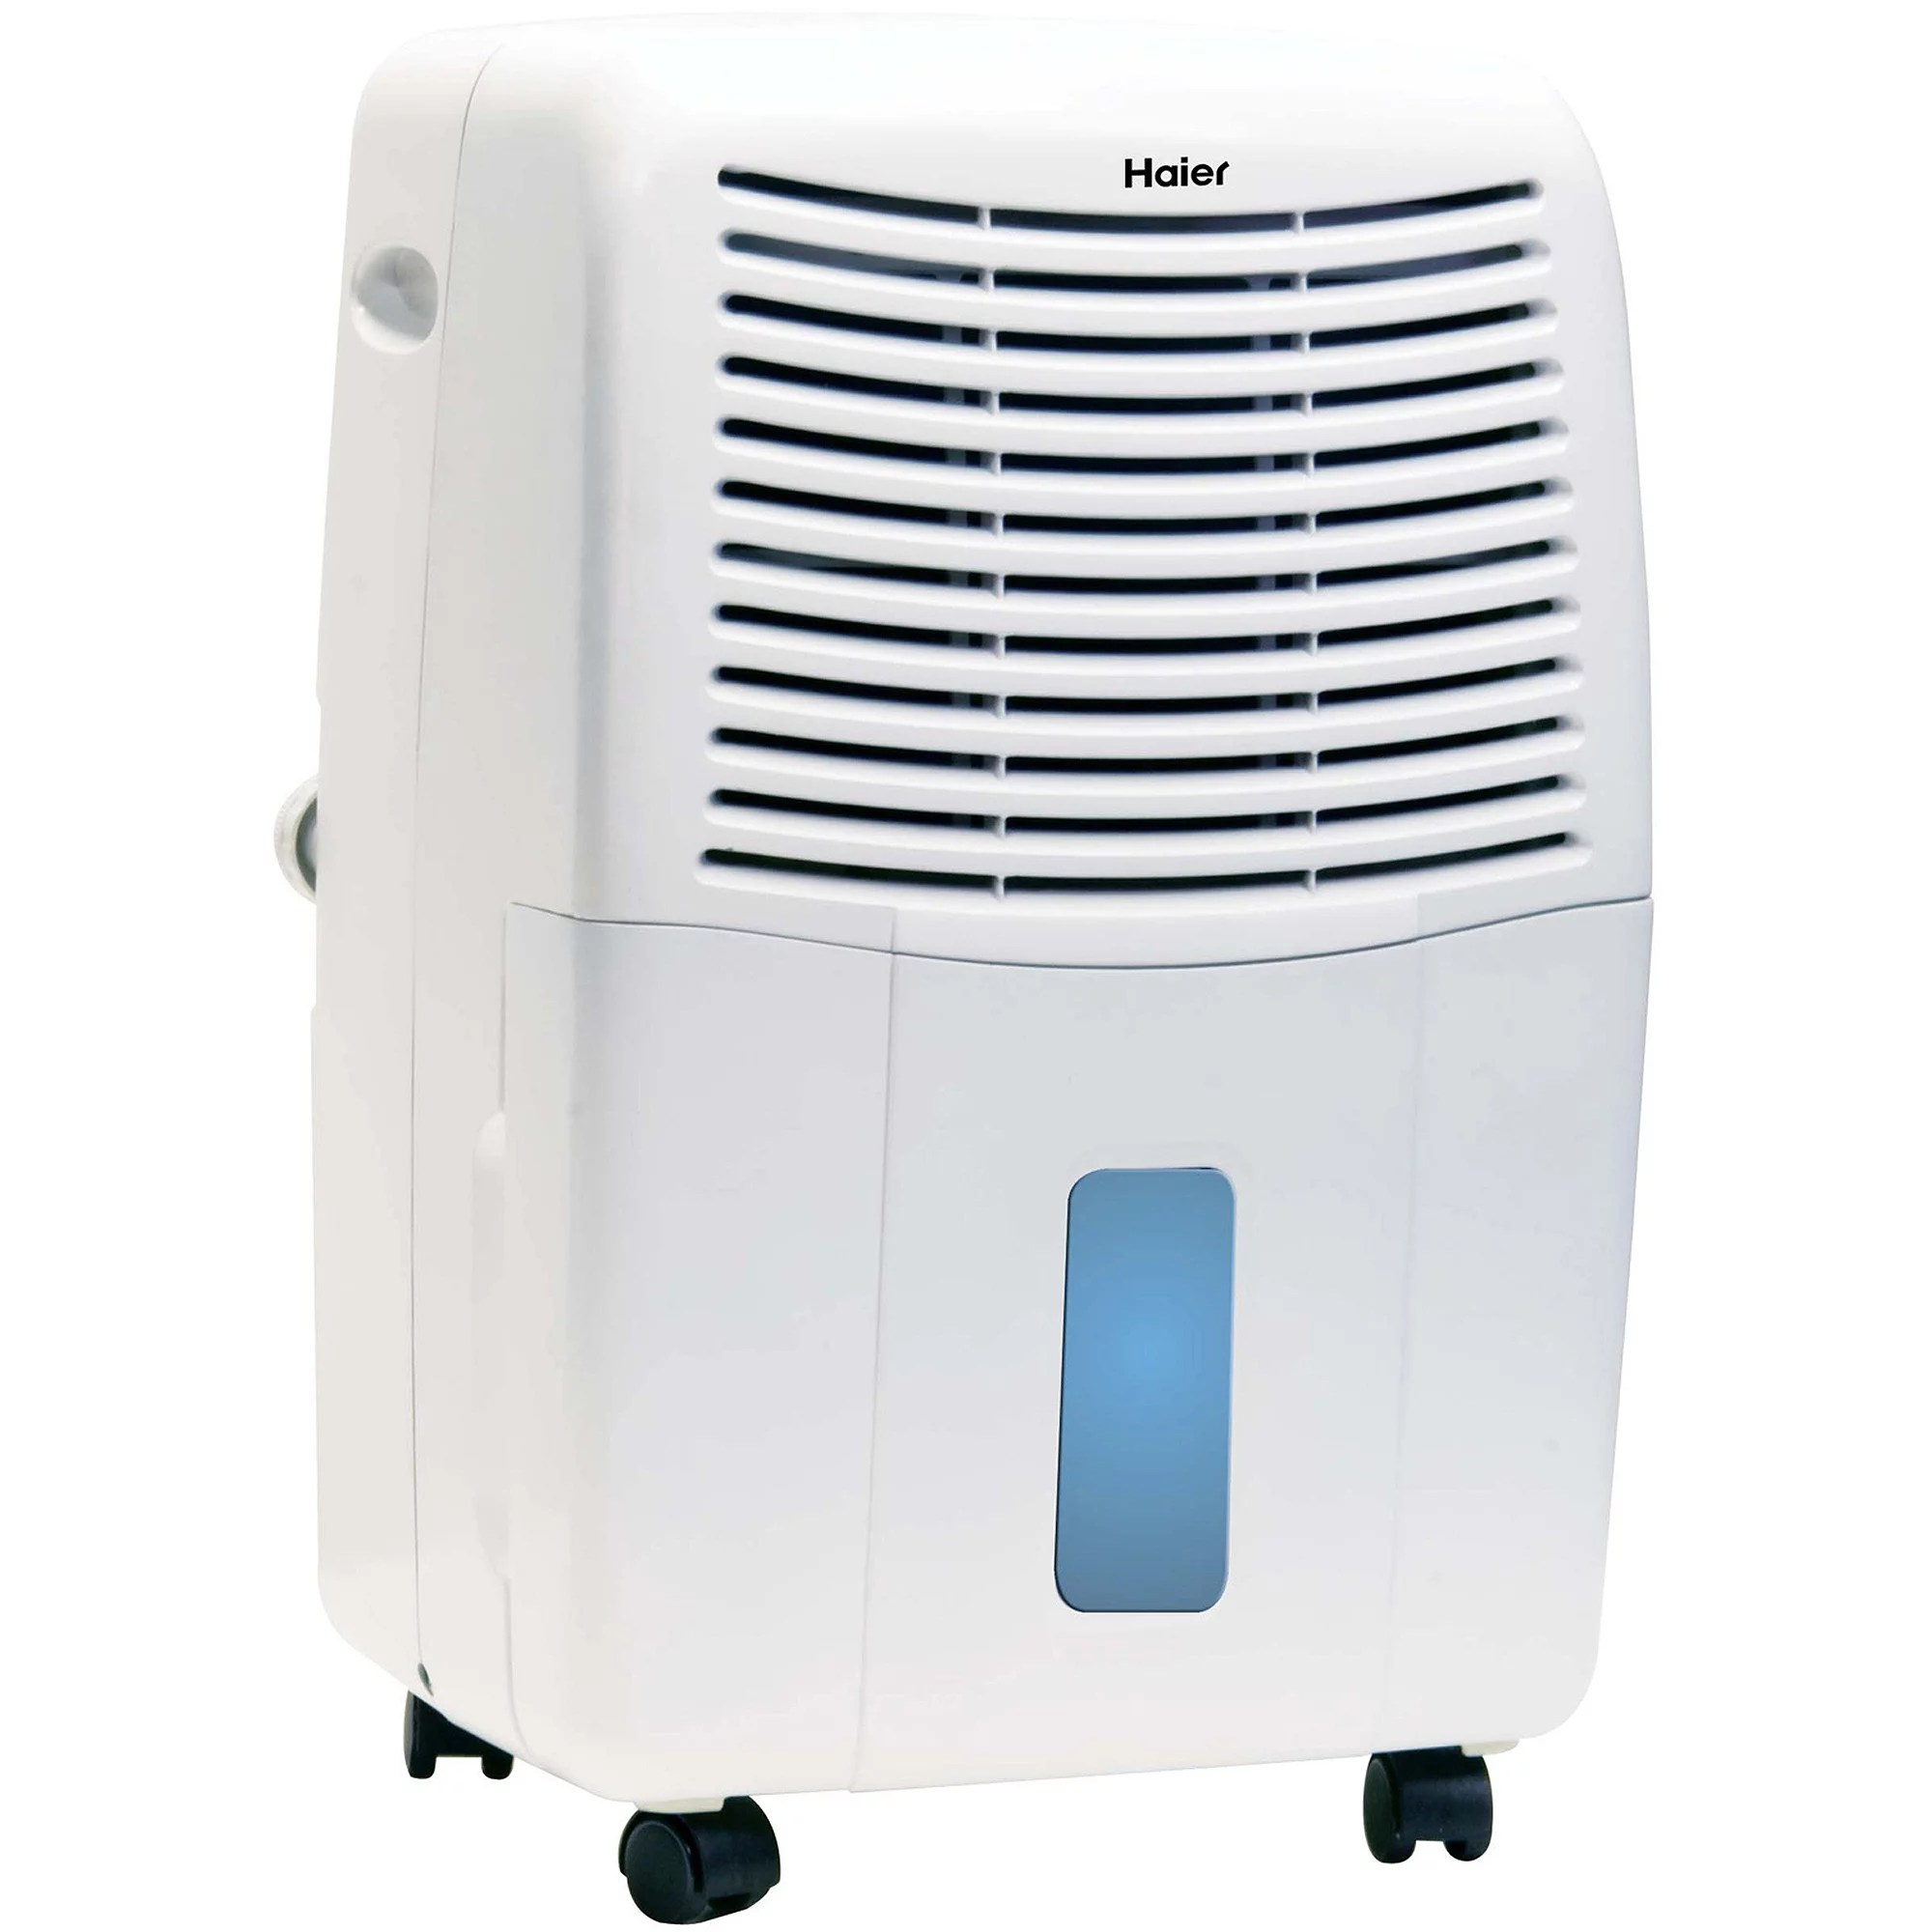 hight resolution of haier 45 pint dehumidifier white refurbished